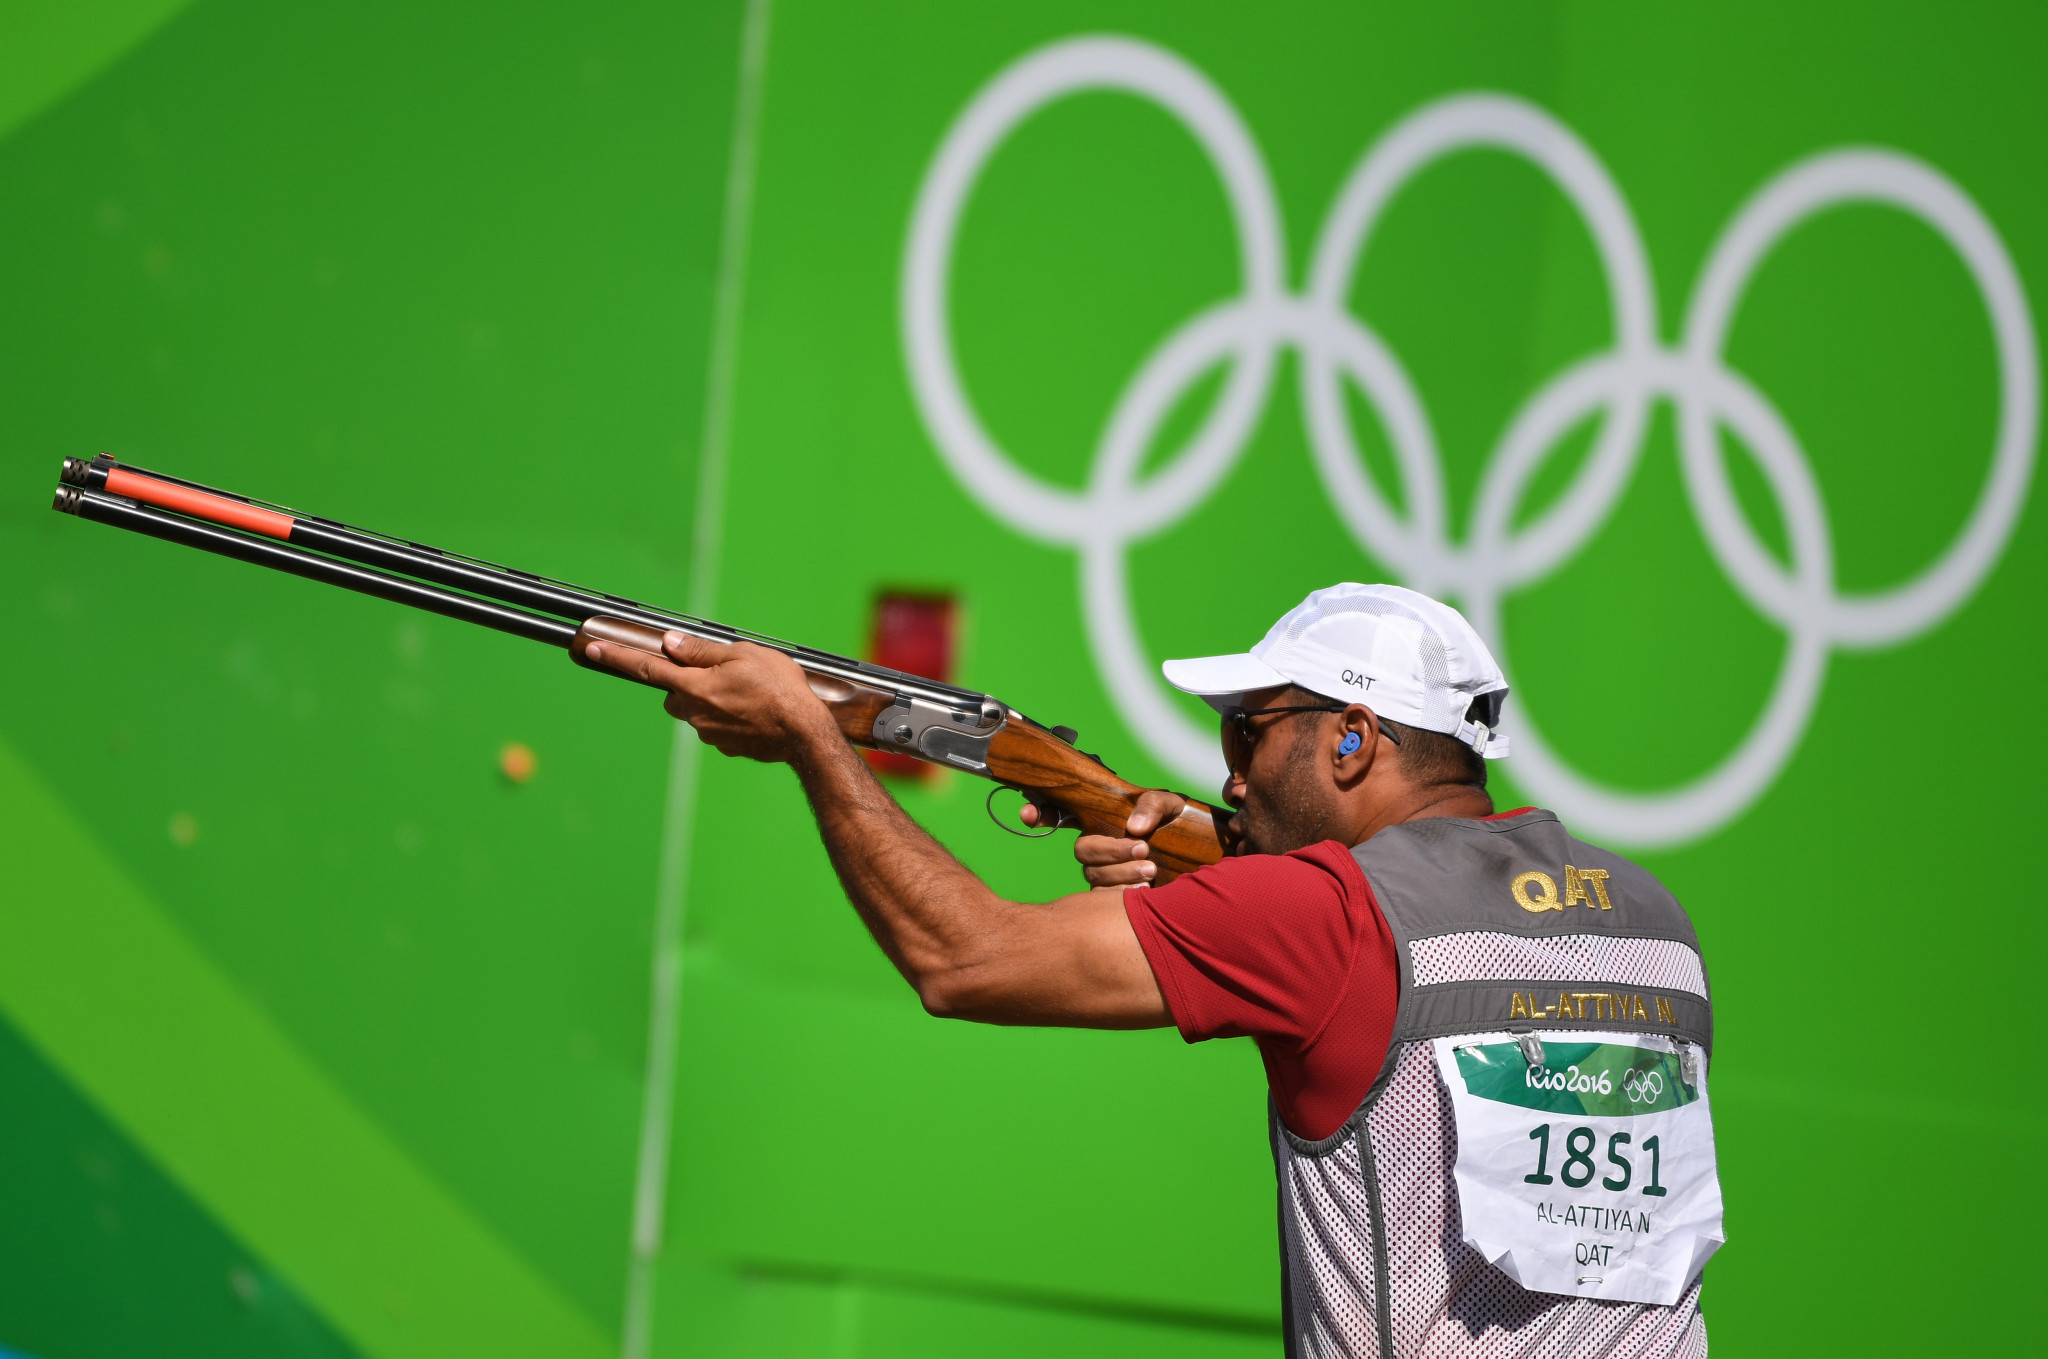 Olympic shooter Nasser Al-Attiyah is another Qatari athlete to back Doha 2030 ©Getty Images